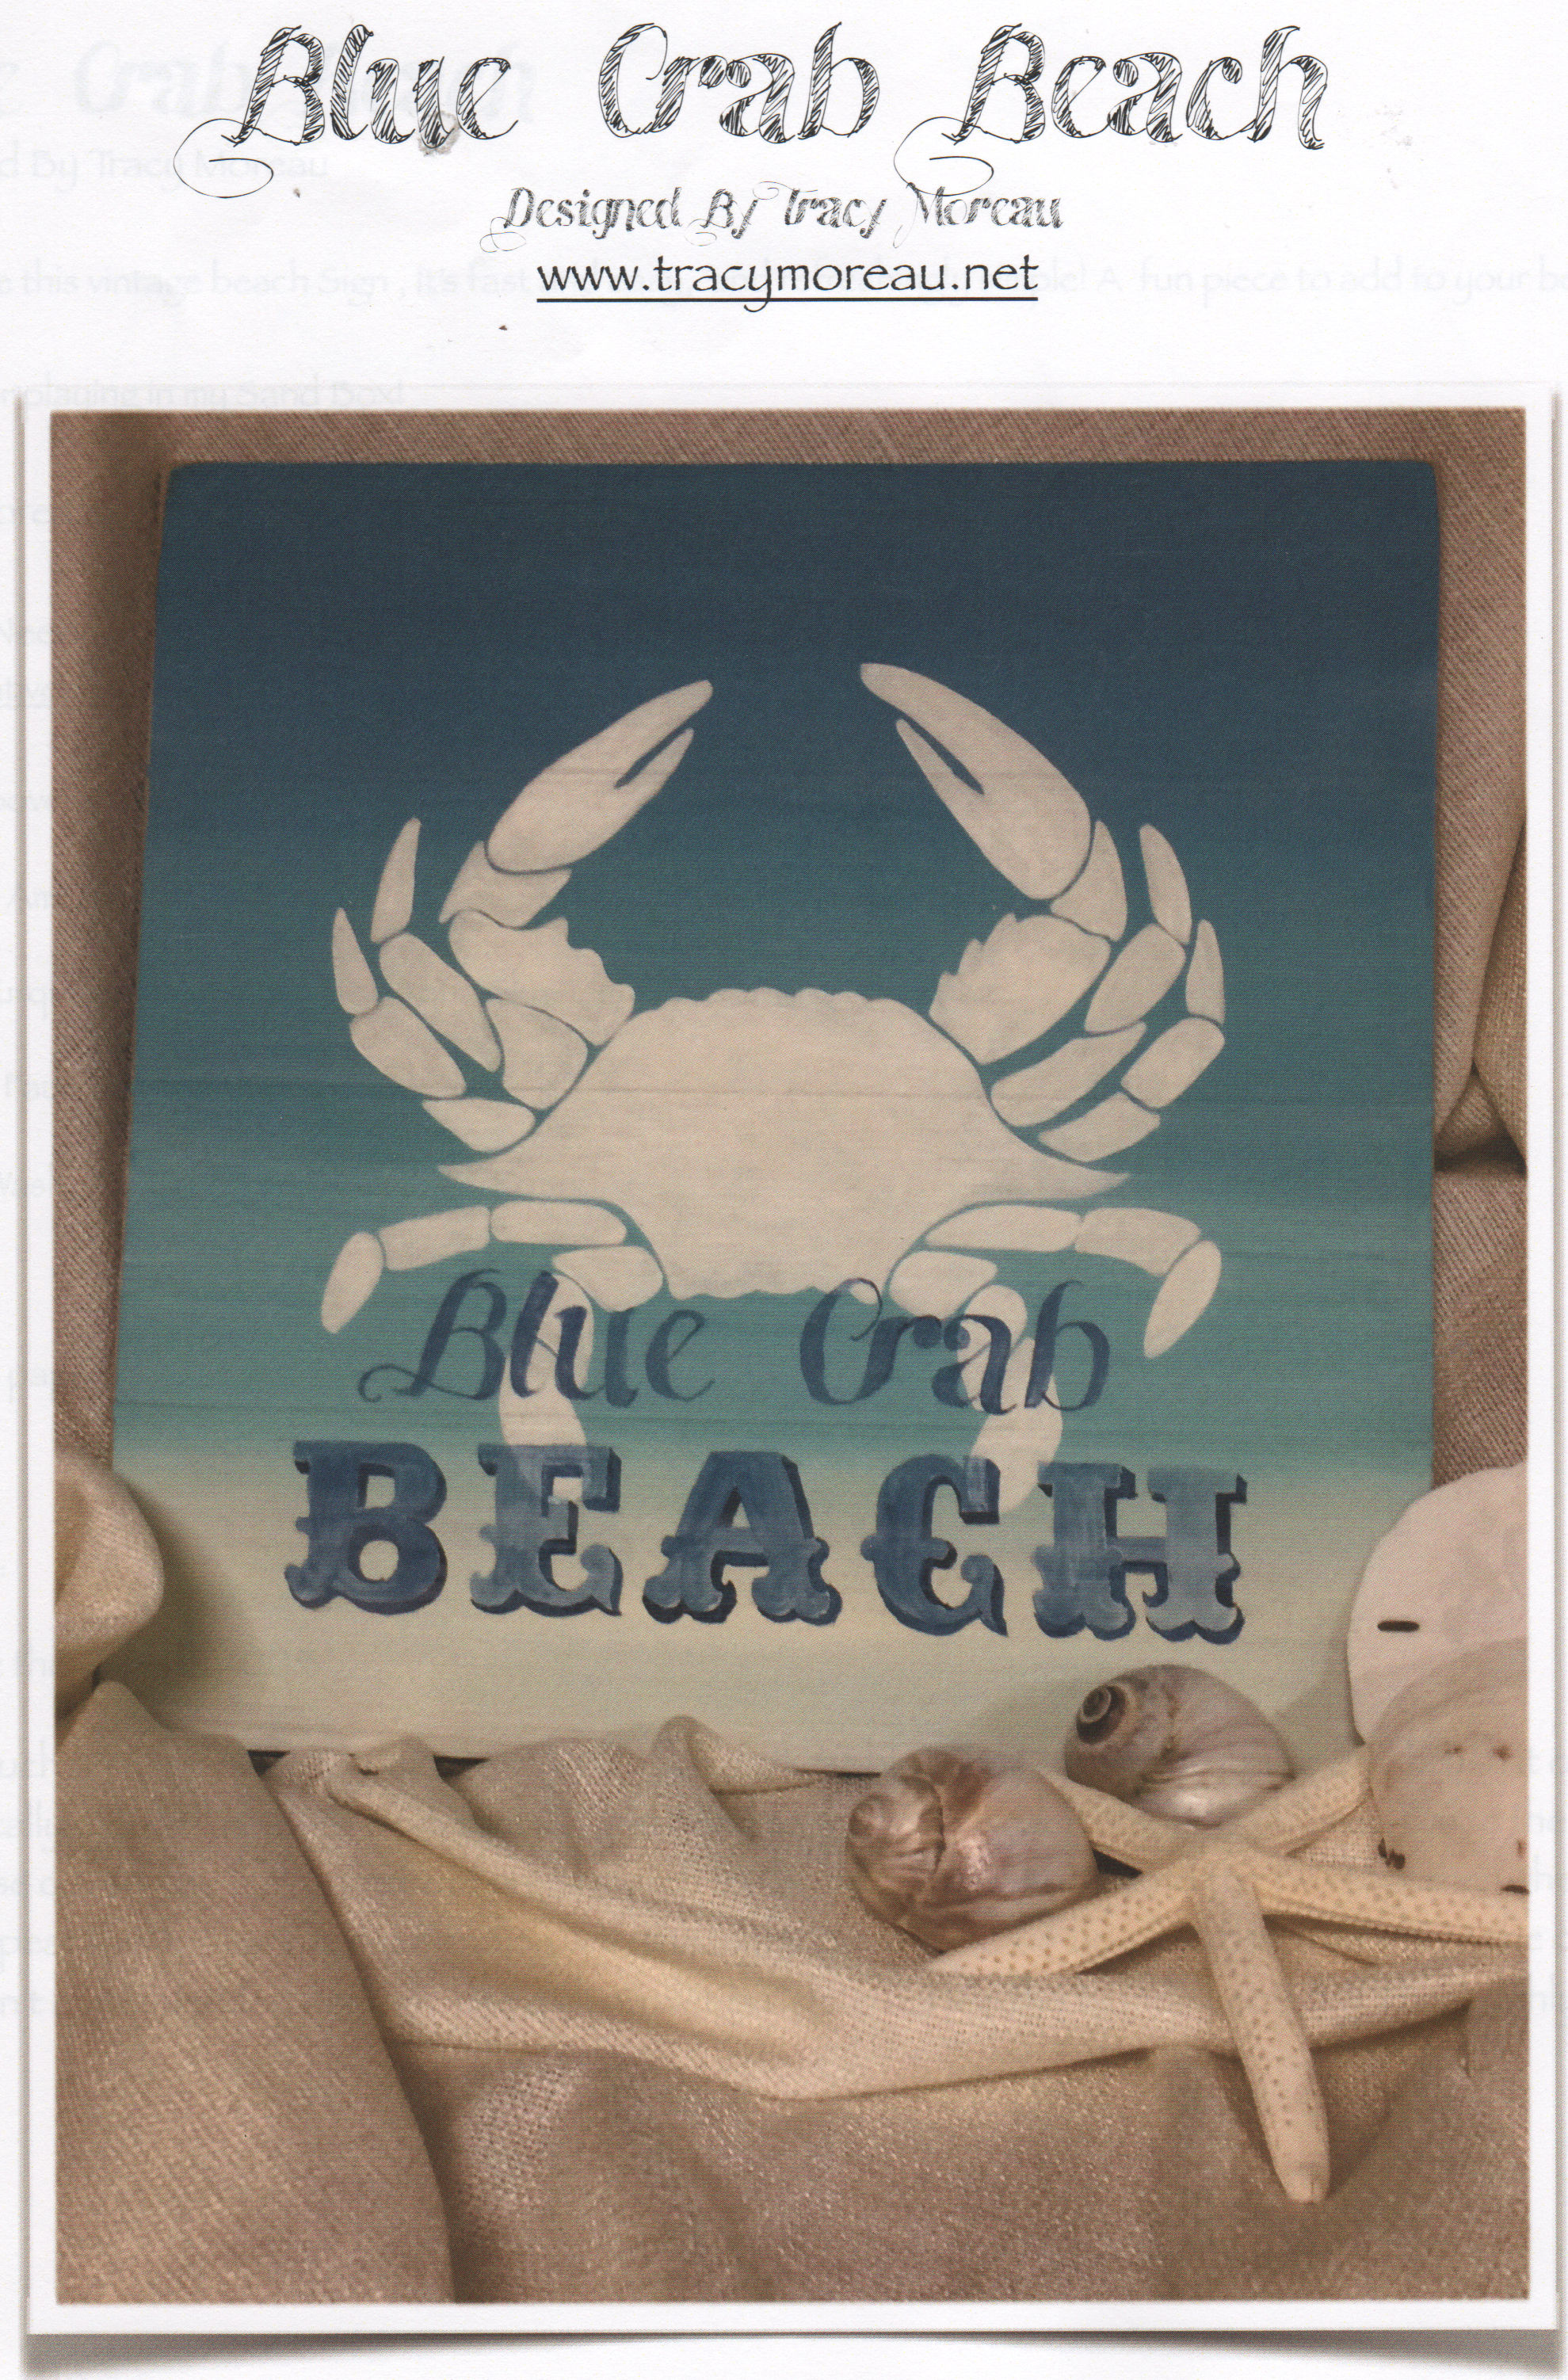 tm-blue-crab-beach-tmbcb000.jpg